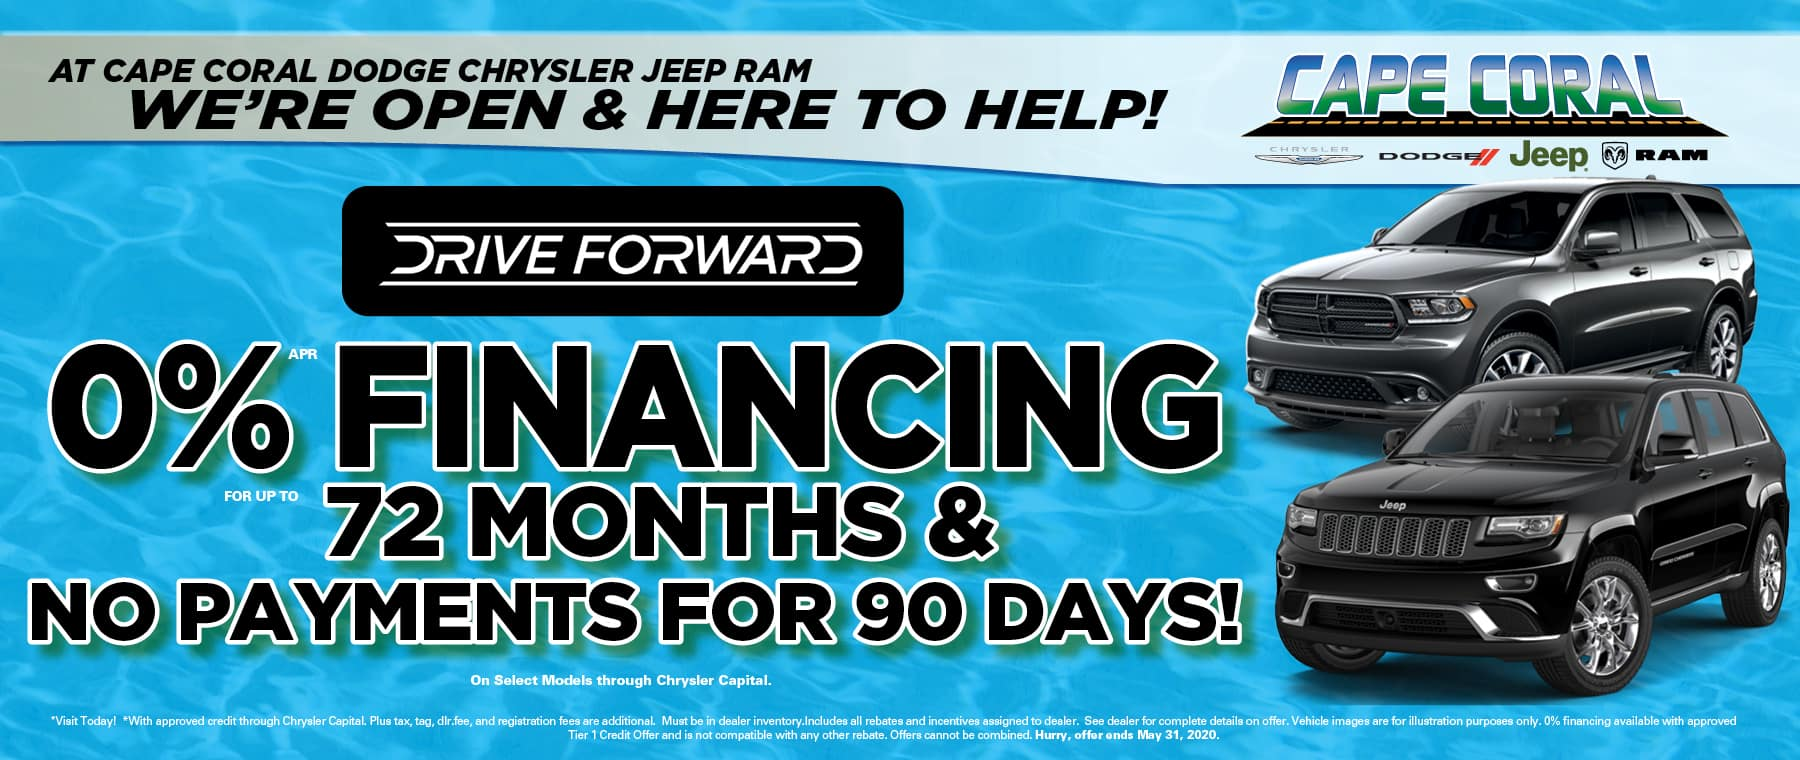 Financing For 72 Months!